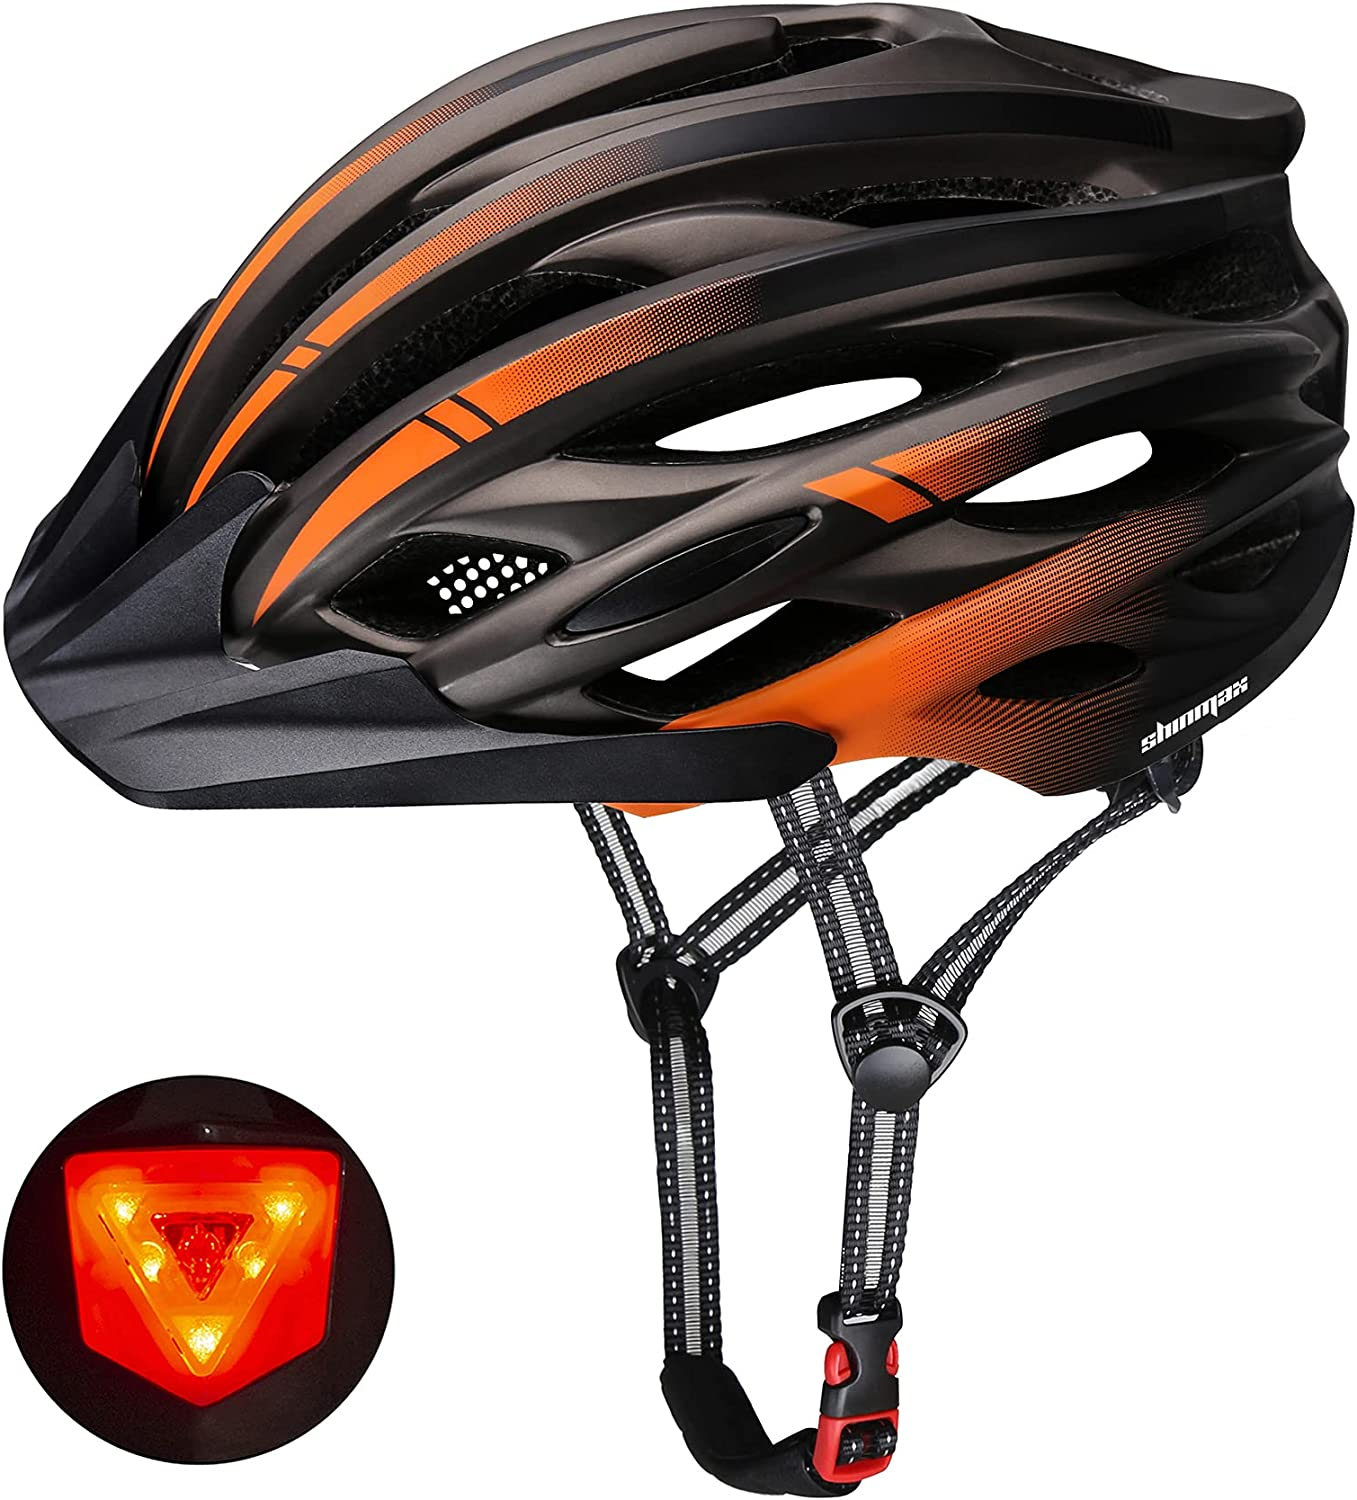 Bike Helmet We OFFer at Deluxe cheap prices Shinmax Bicycle Men Light with Det Women LED